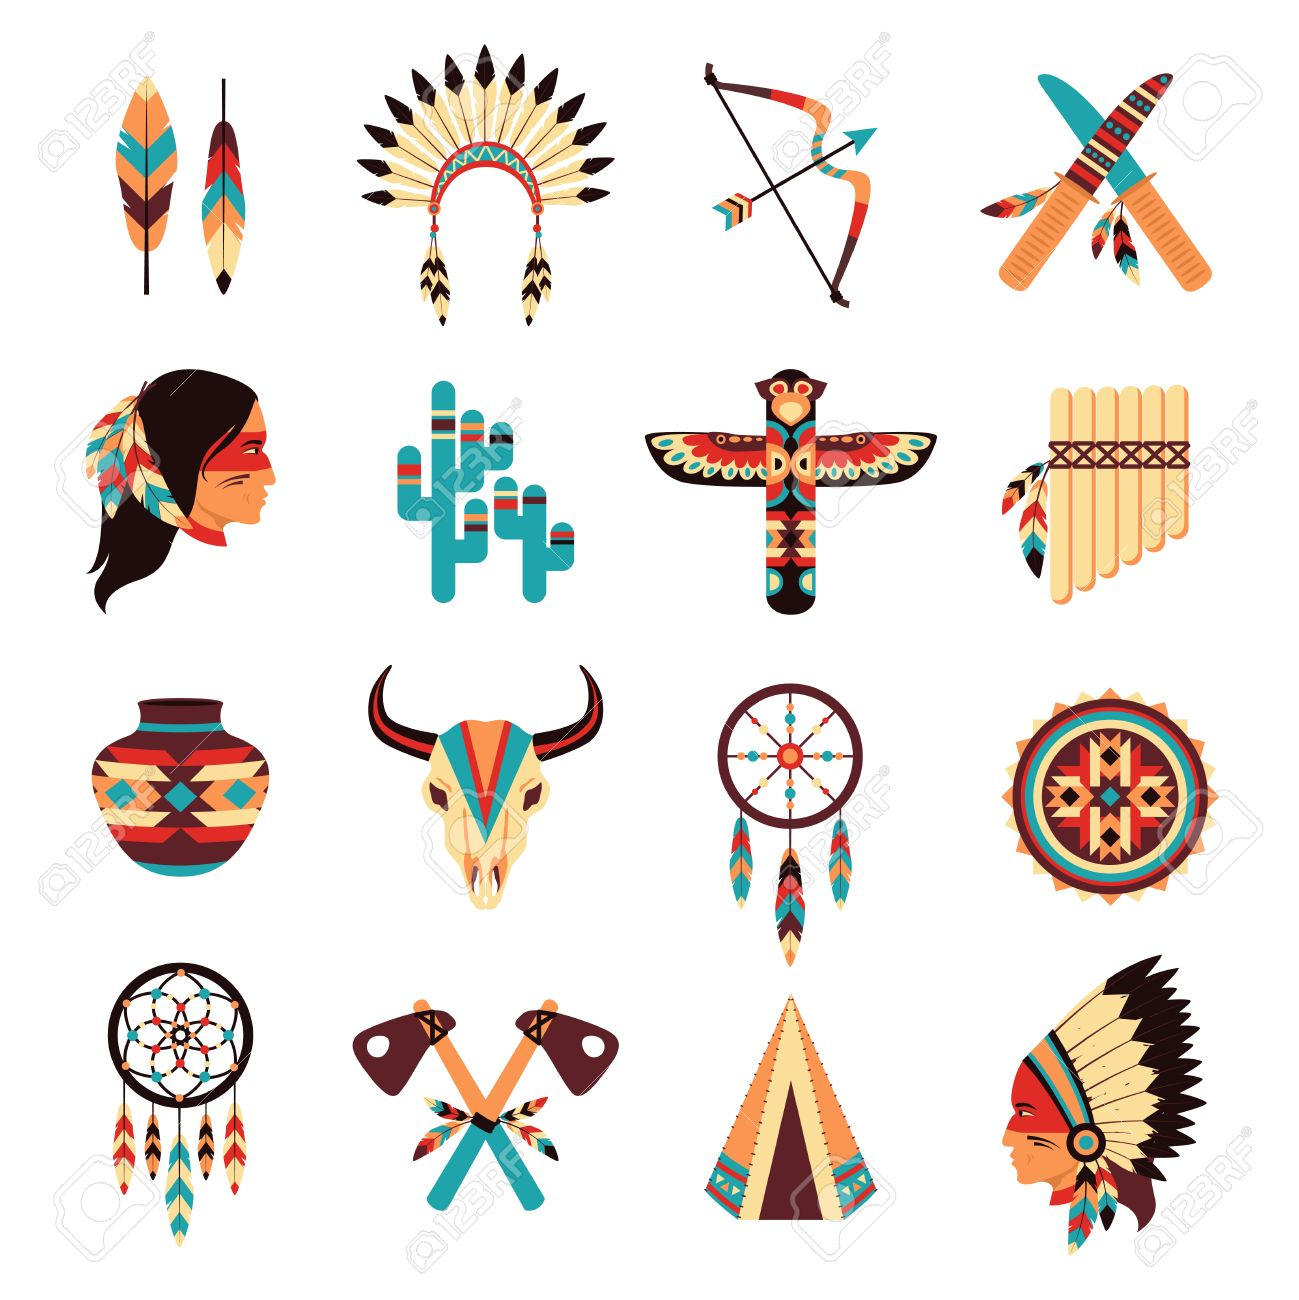 Ethnic american idigenous tribal amulets and symbols icons ethnic american idigenous tribal amulets and symbols icons collection with native feathers headdress abstract isolated vector buycottarizona